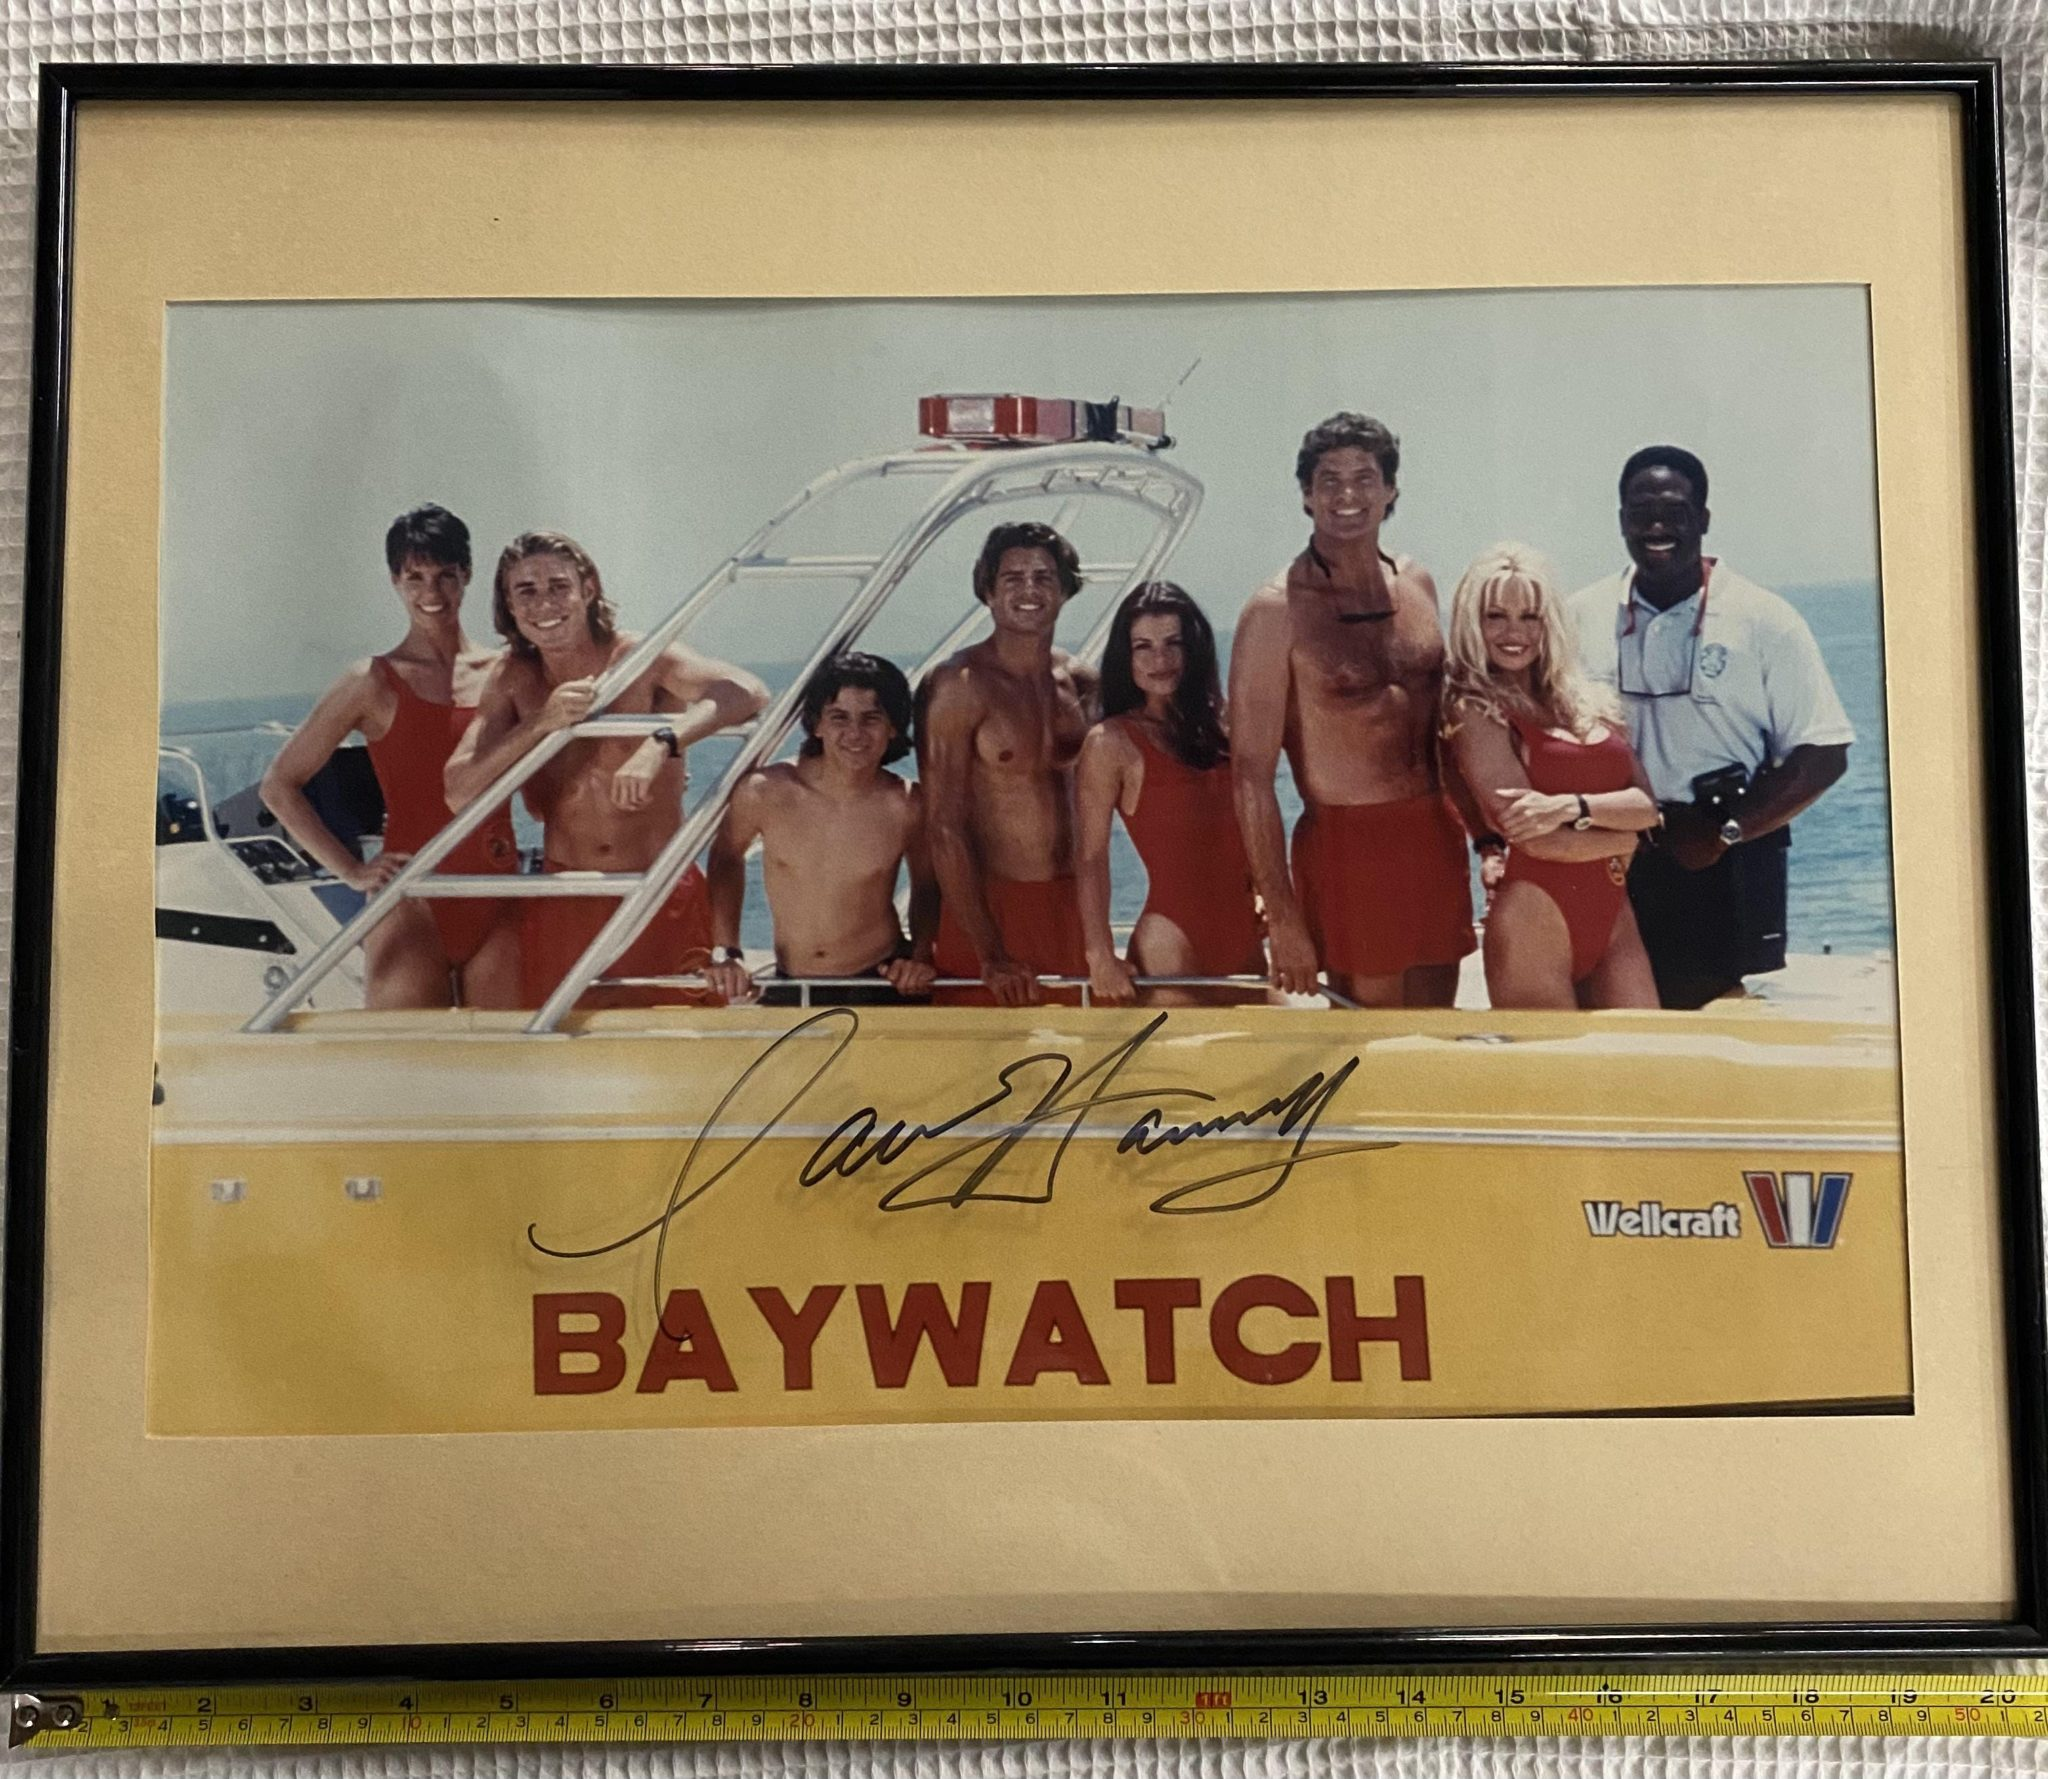 BikiniARTmuseum, David Hasselhoff`s K.I.T.T. für 300.000 $ in USA versteigert, City-News.de